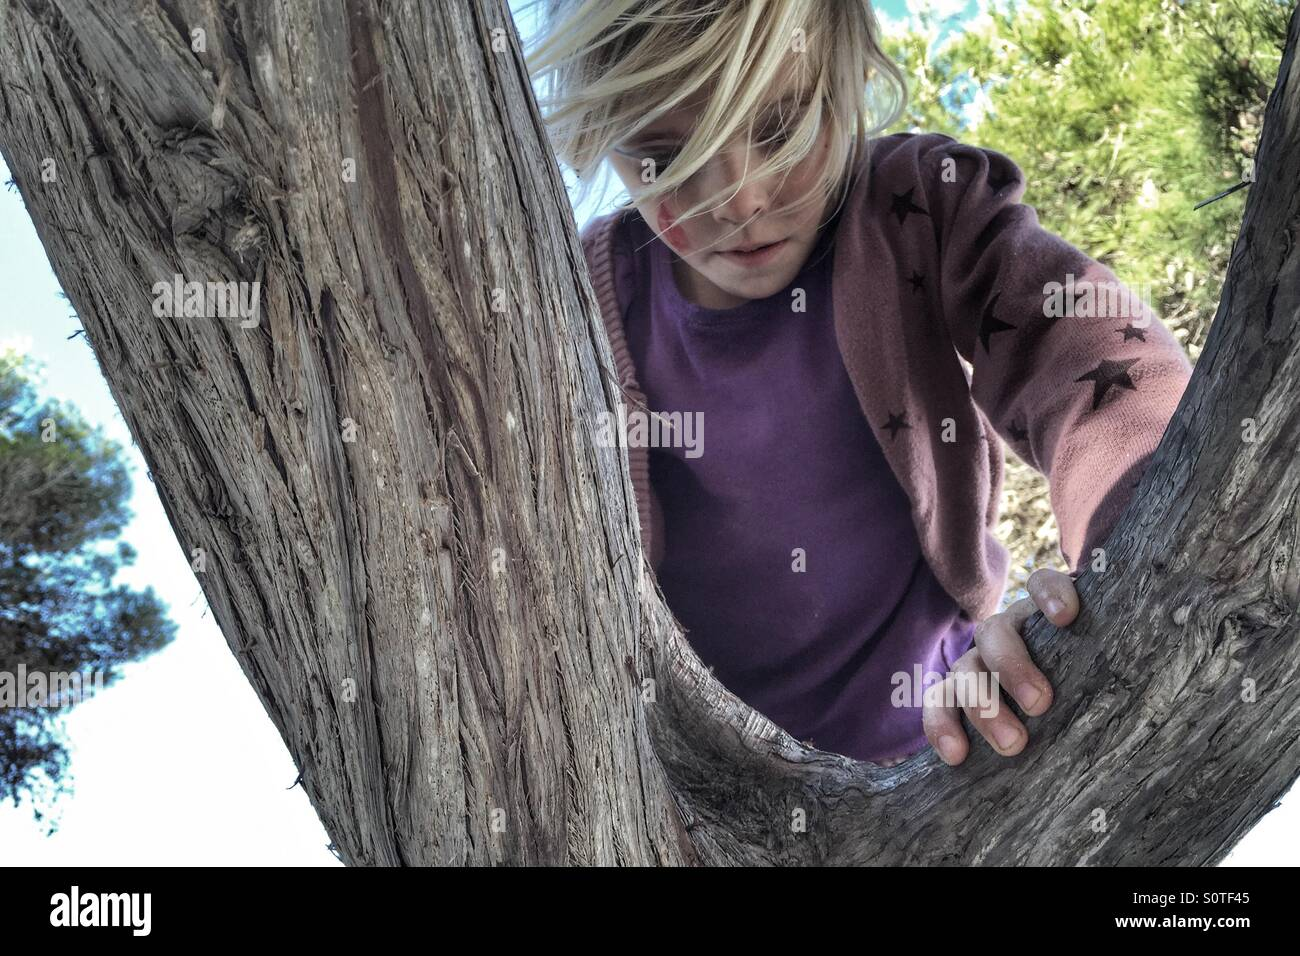 Girl climbing a tree - Stock Image